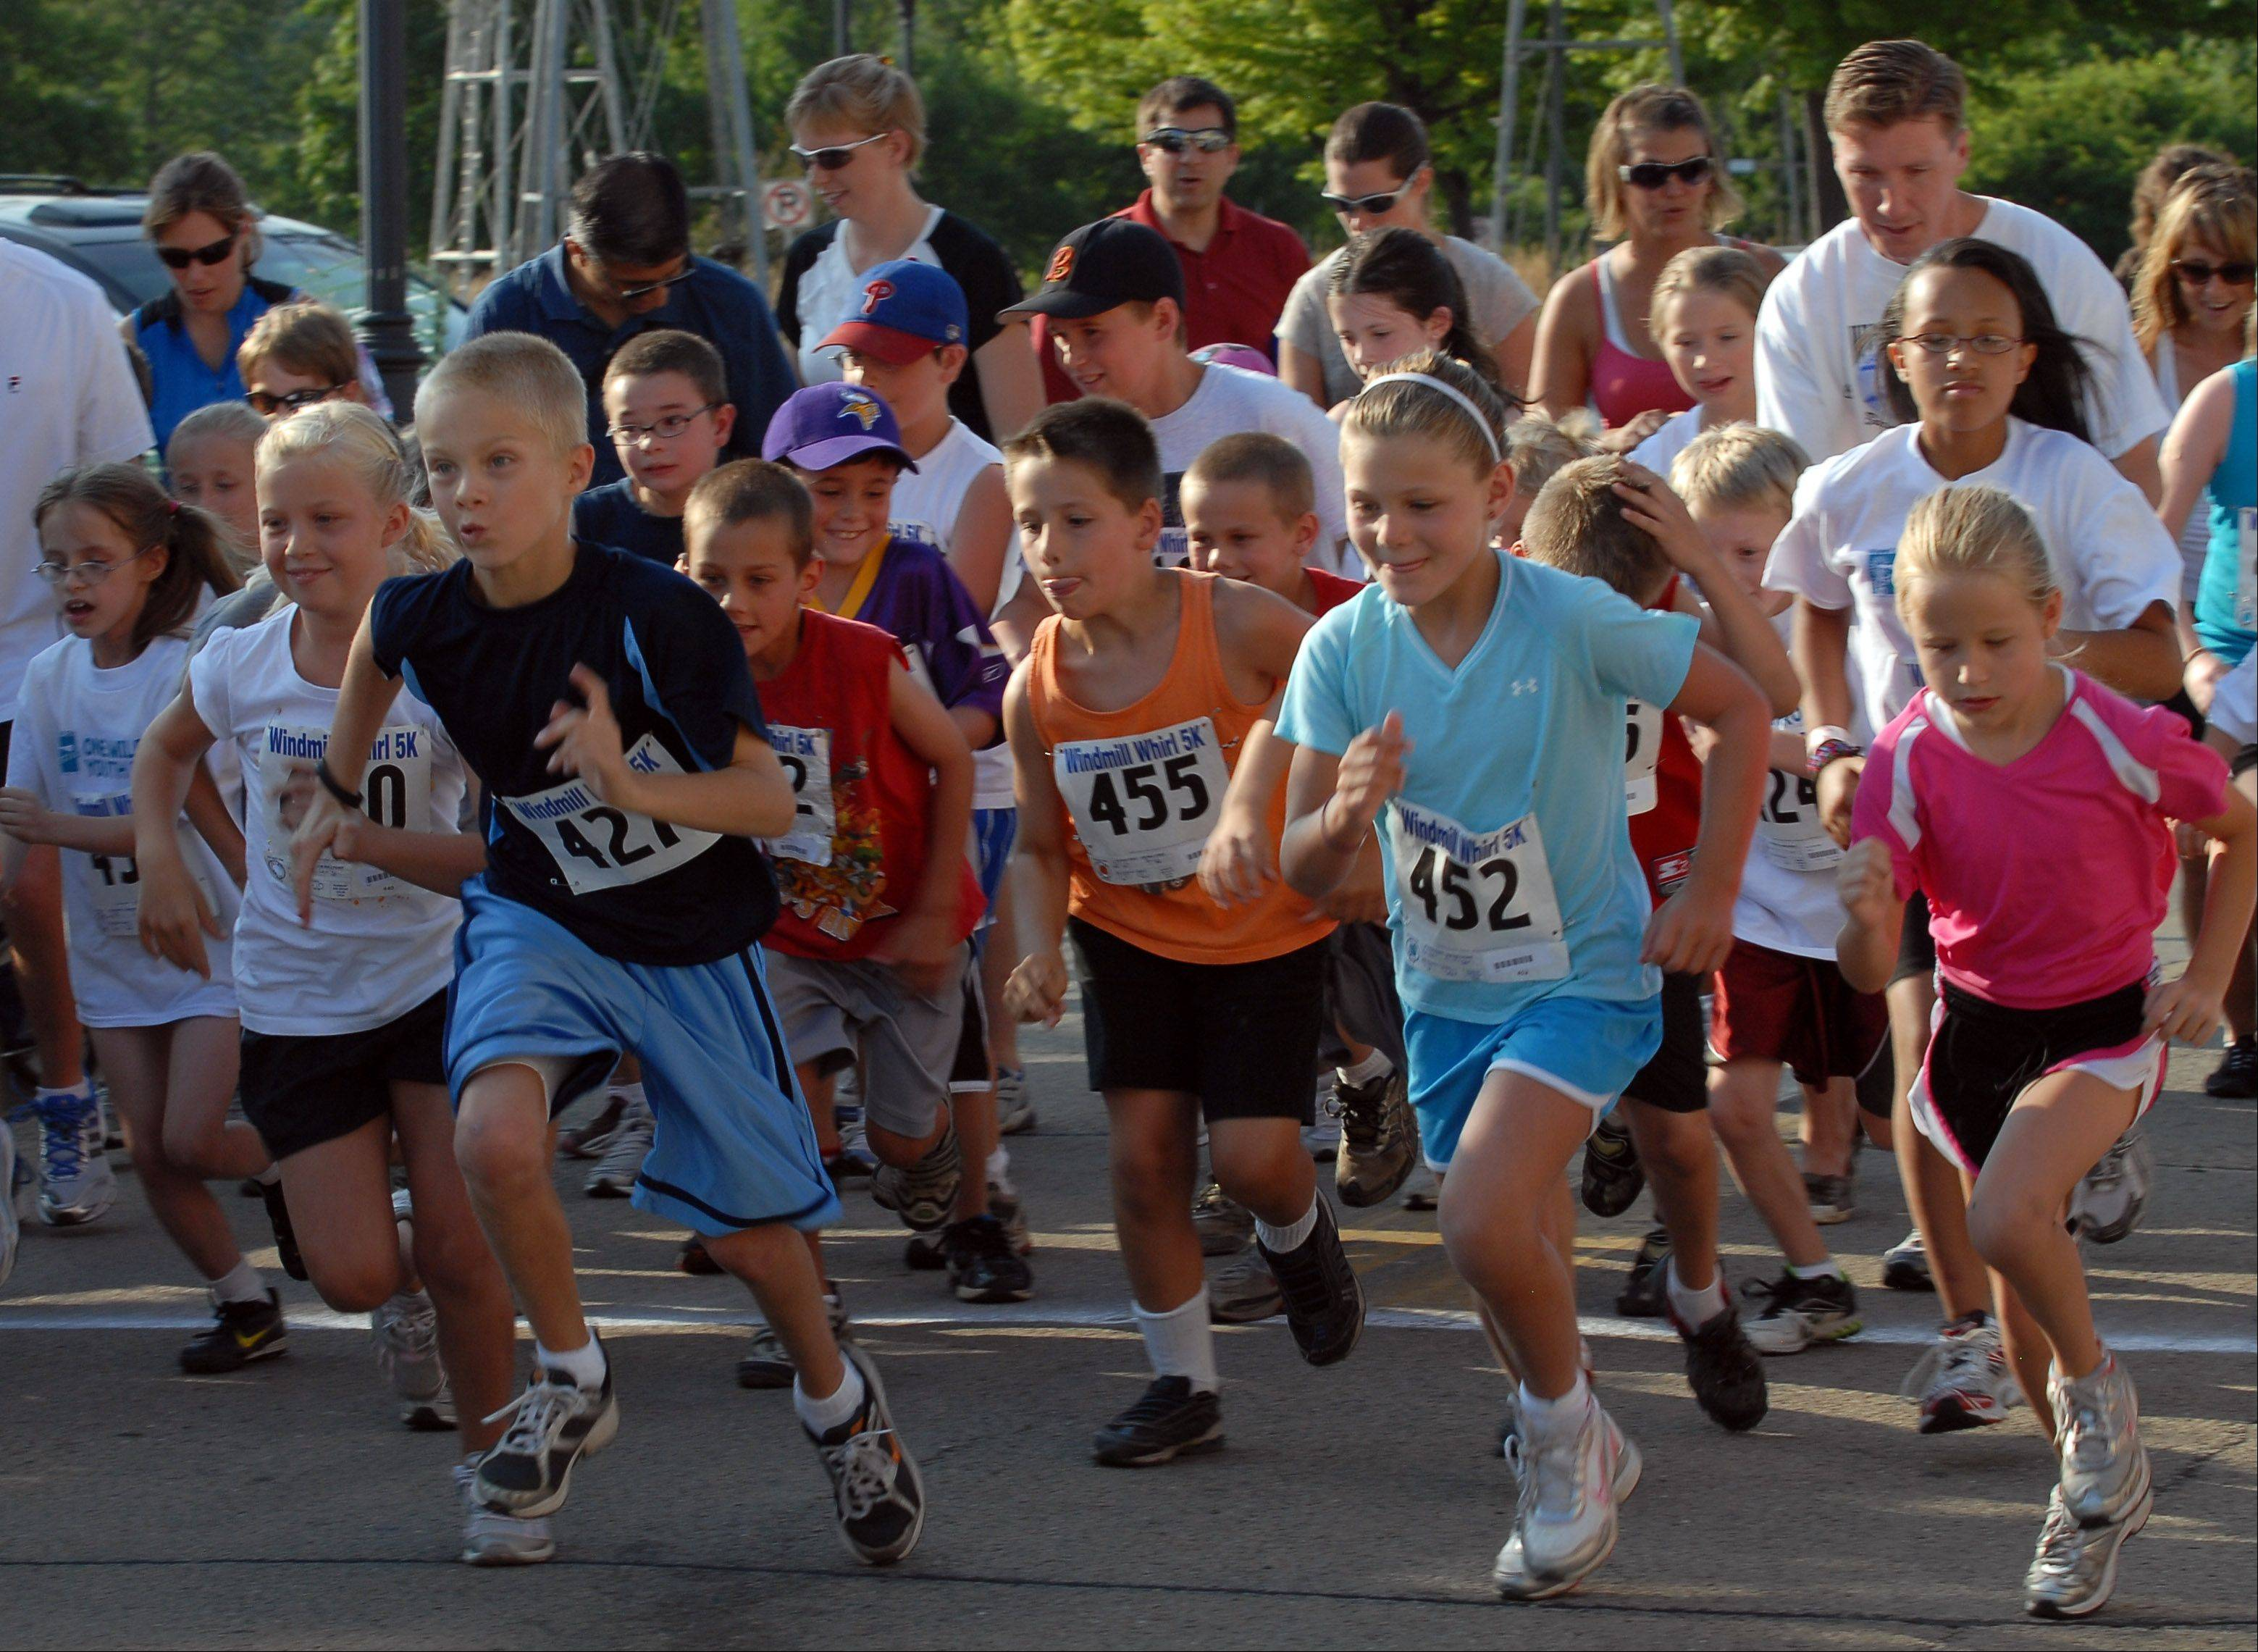 The Windmill Whirl kids' race takes off at last year's Windmill City Festival in Batavia.